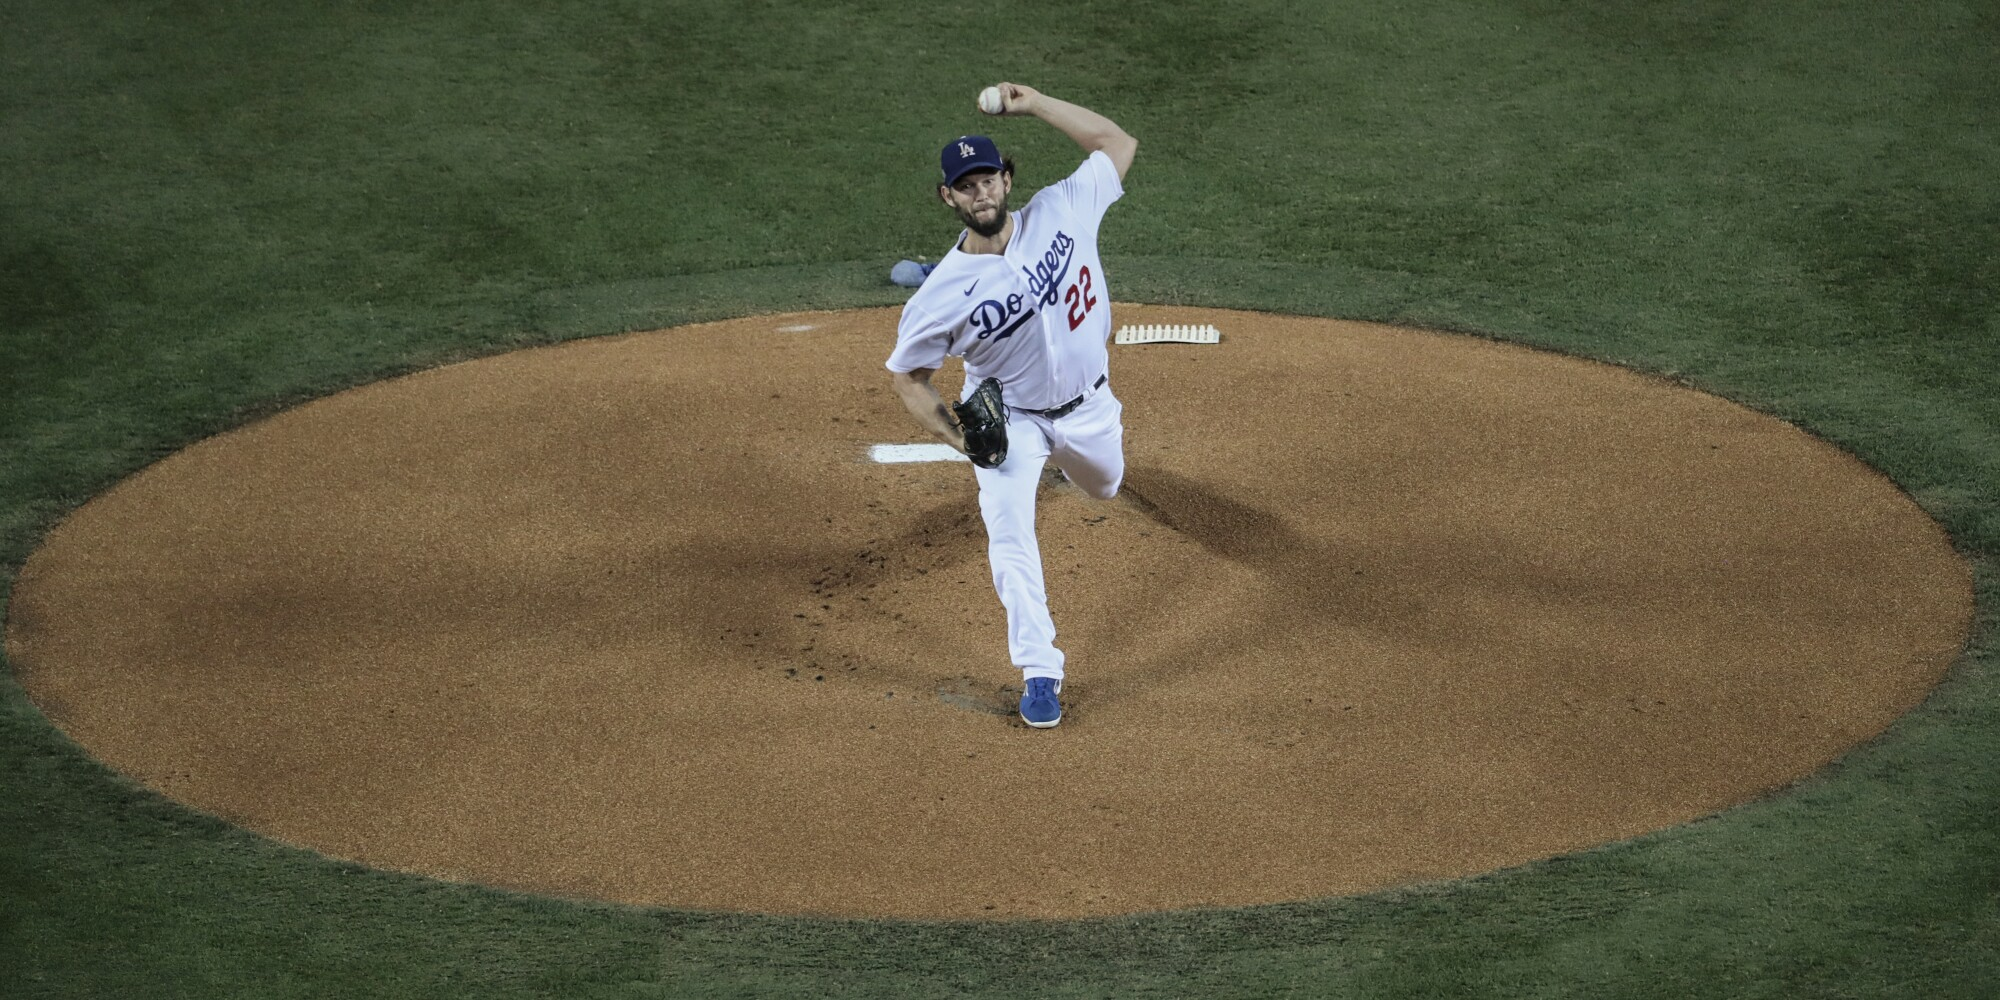 Dodgers starting pitcher Clayton Kershaw throws during Game 2 against the Milwaukee Brewers on Thursday.